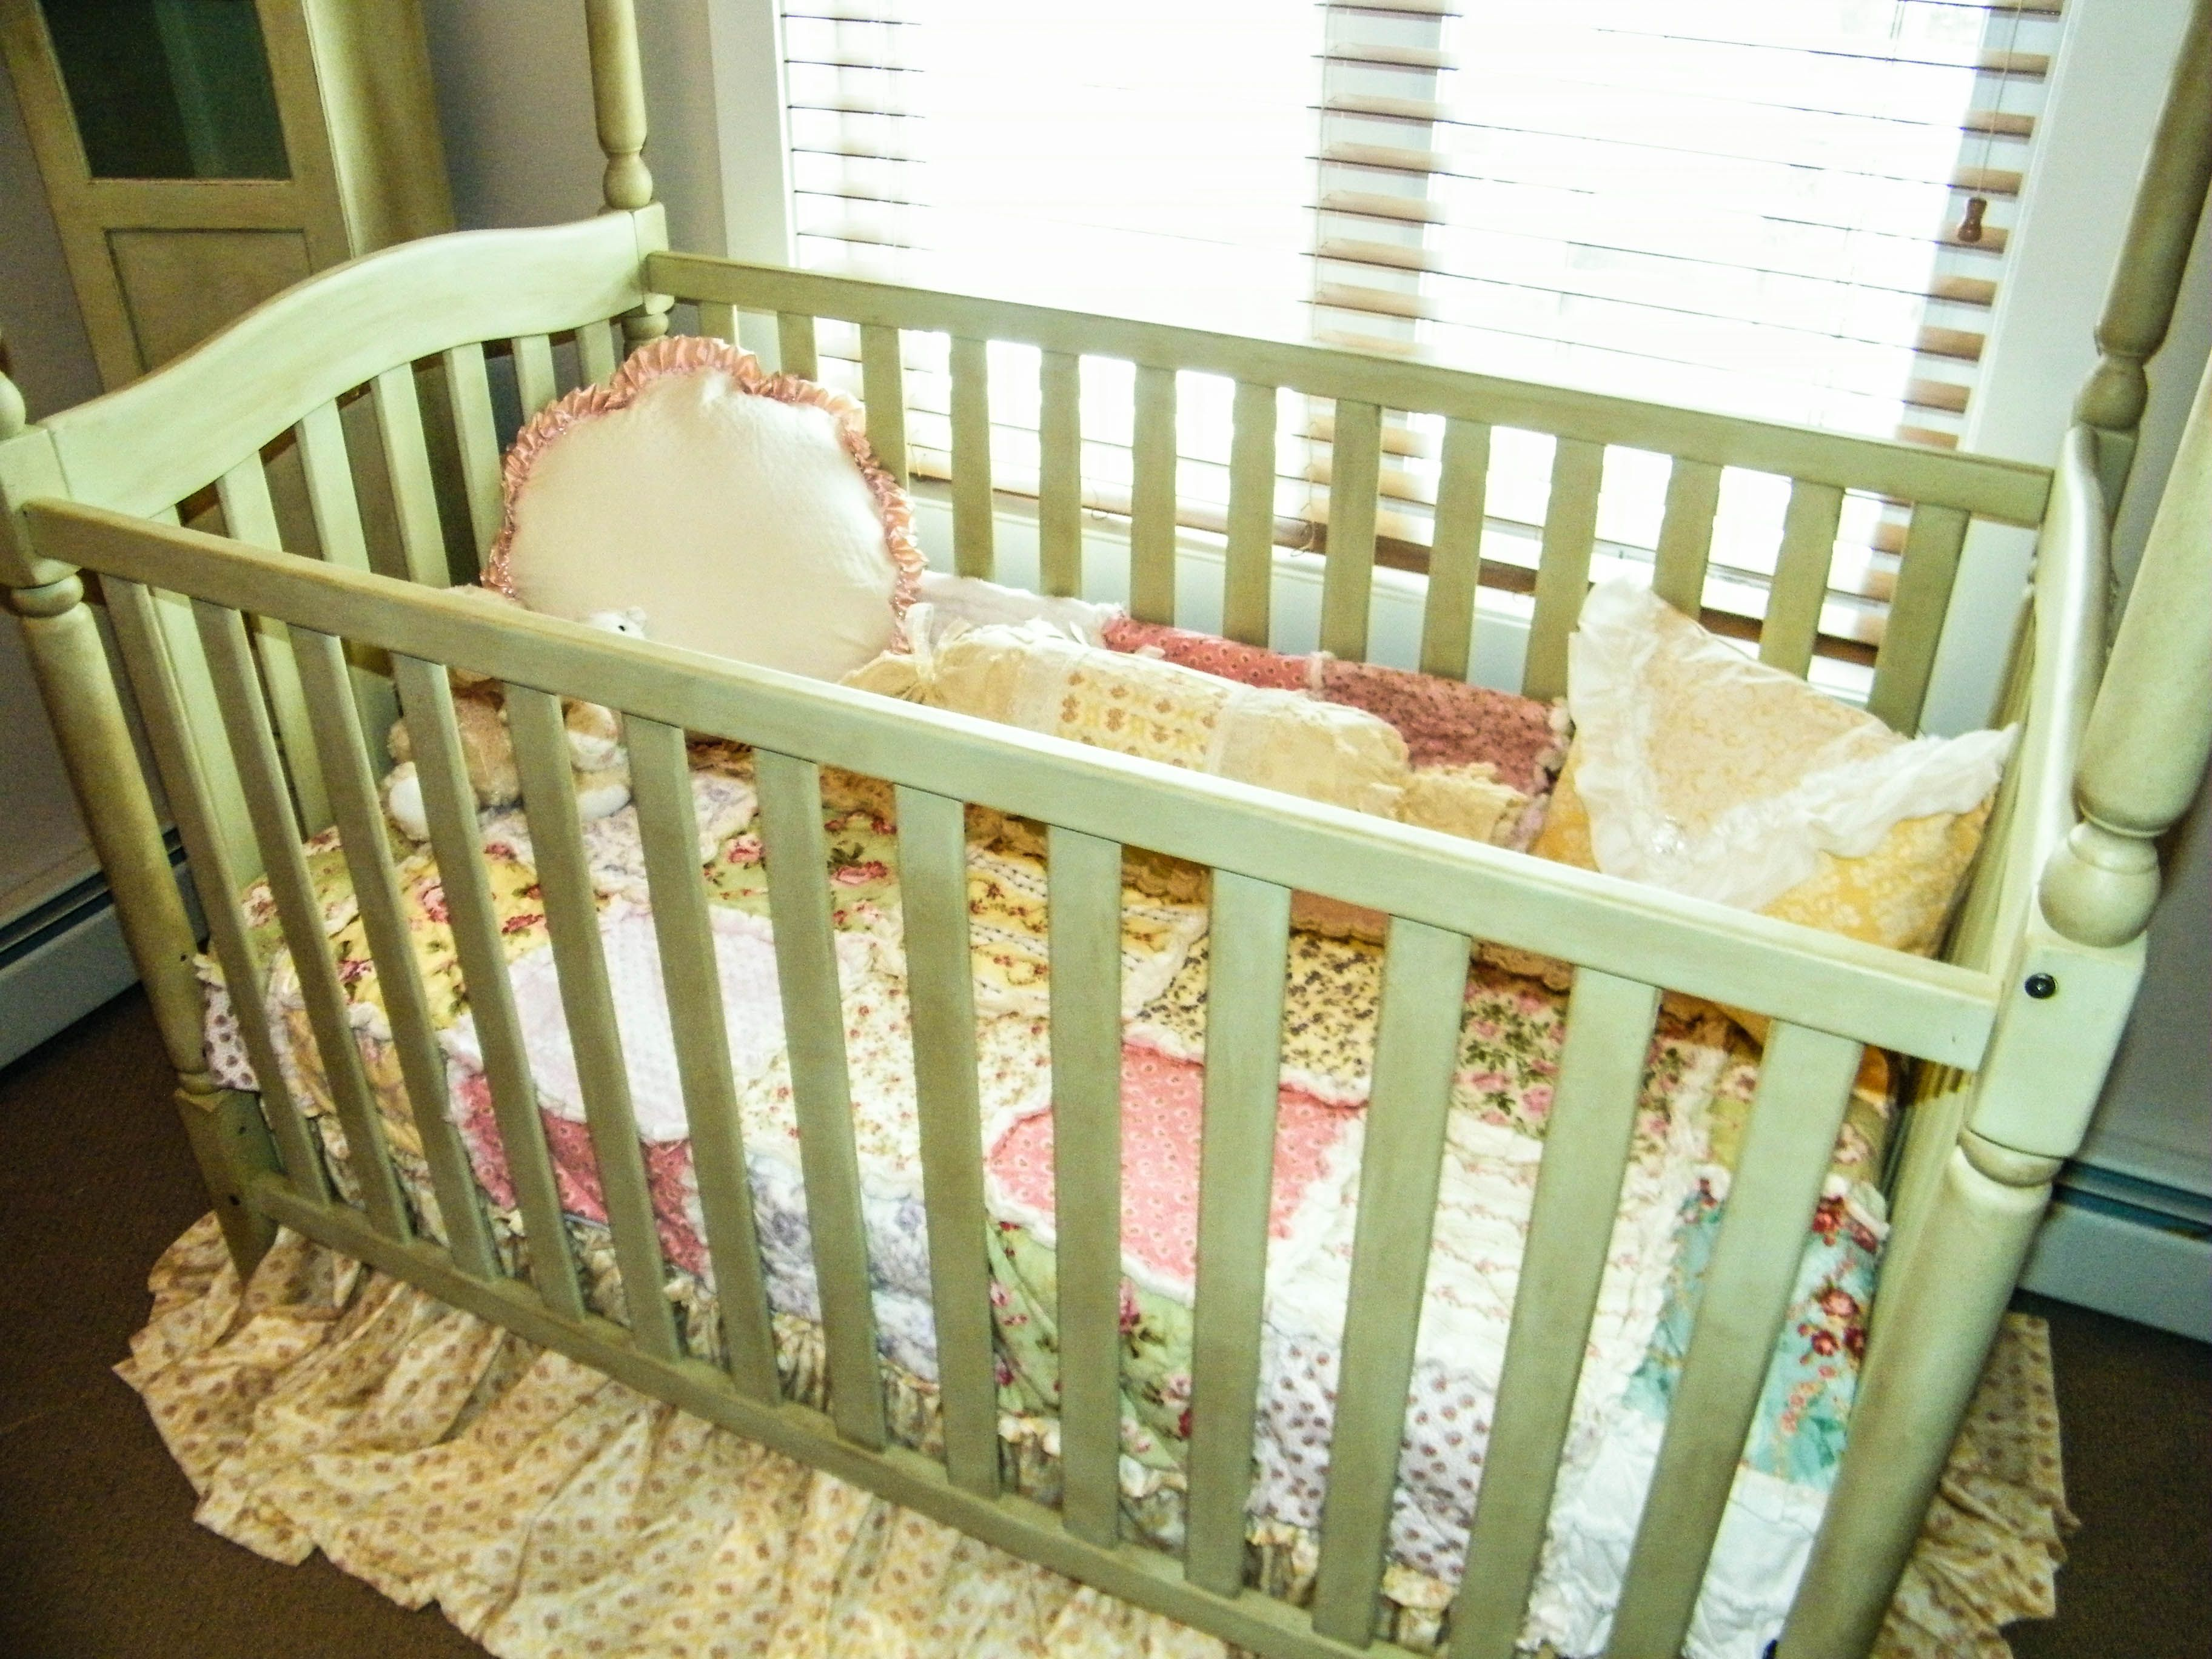 Safest brand of crib for babies - Baby Cribs Homemade Chalk Painted Crib Using Homemade Chalk Paint Or